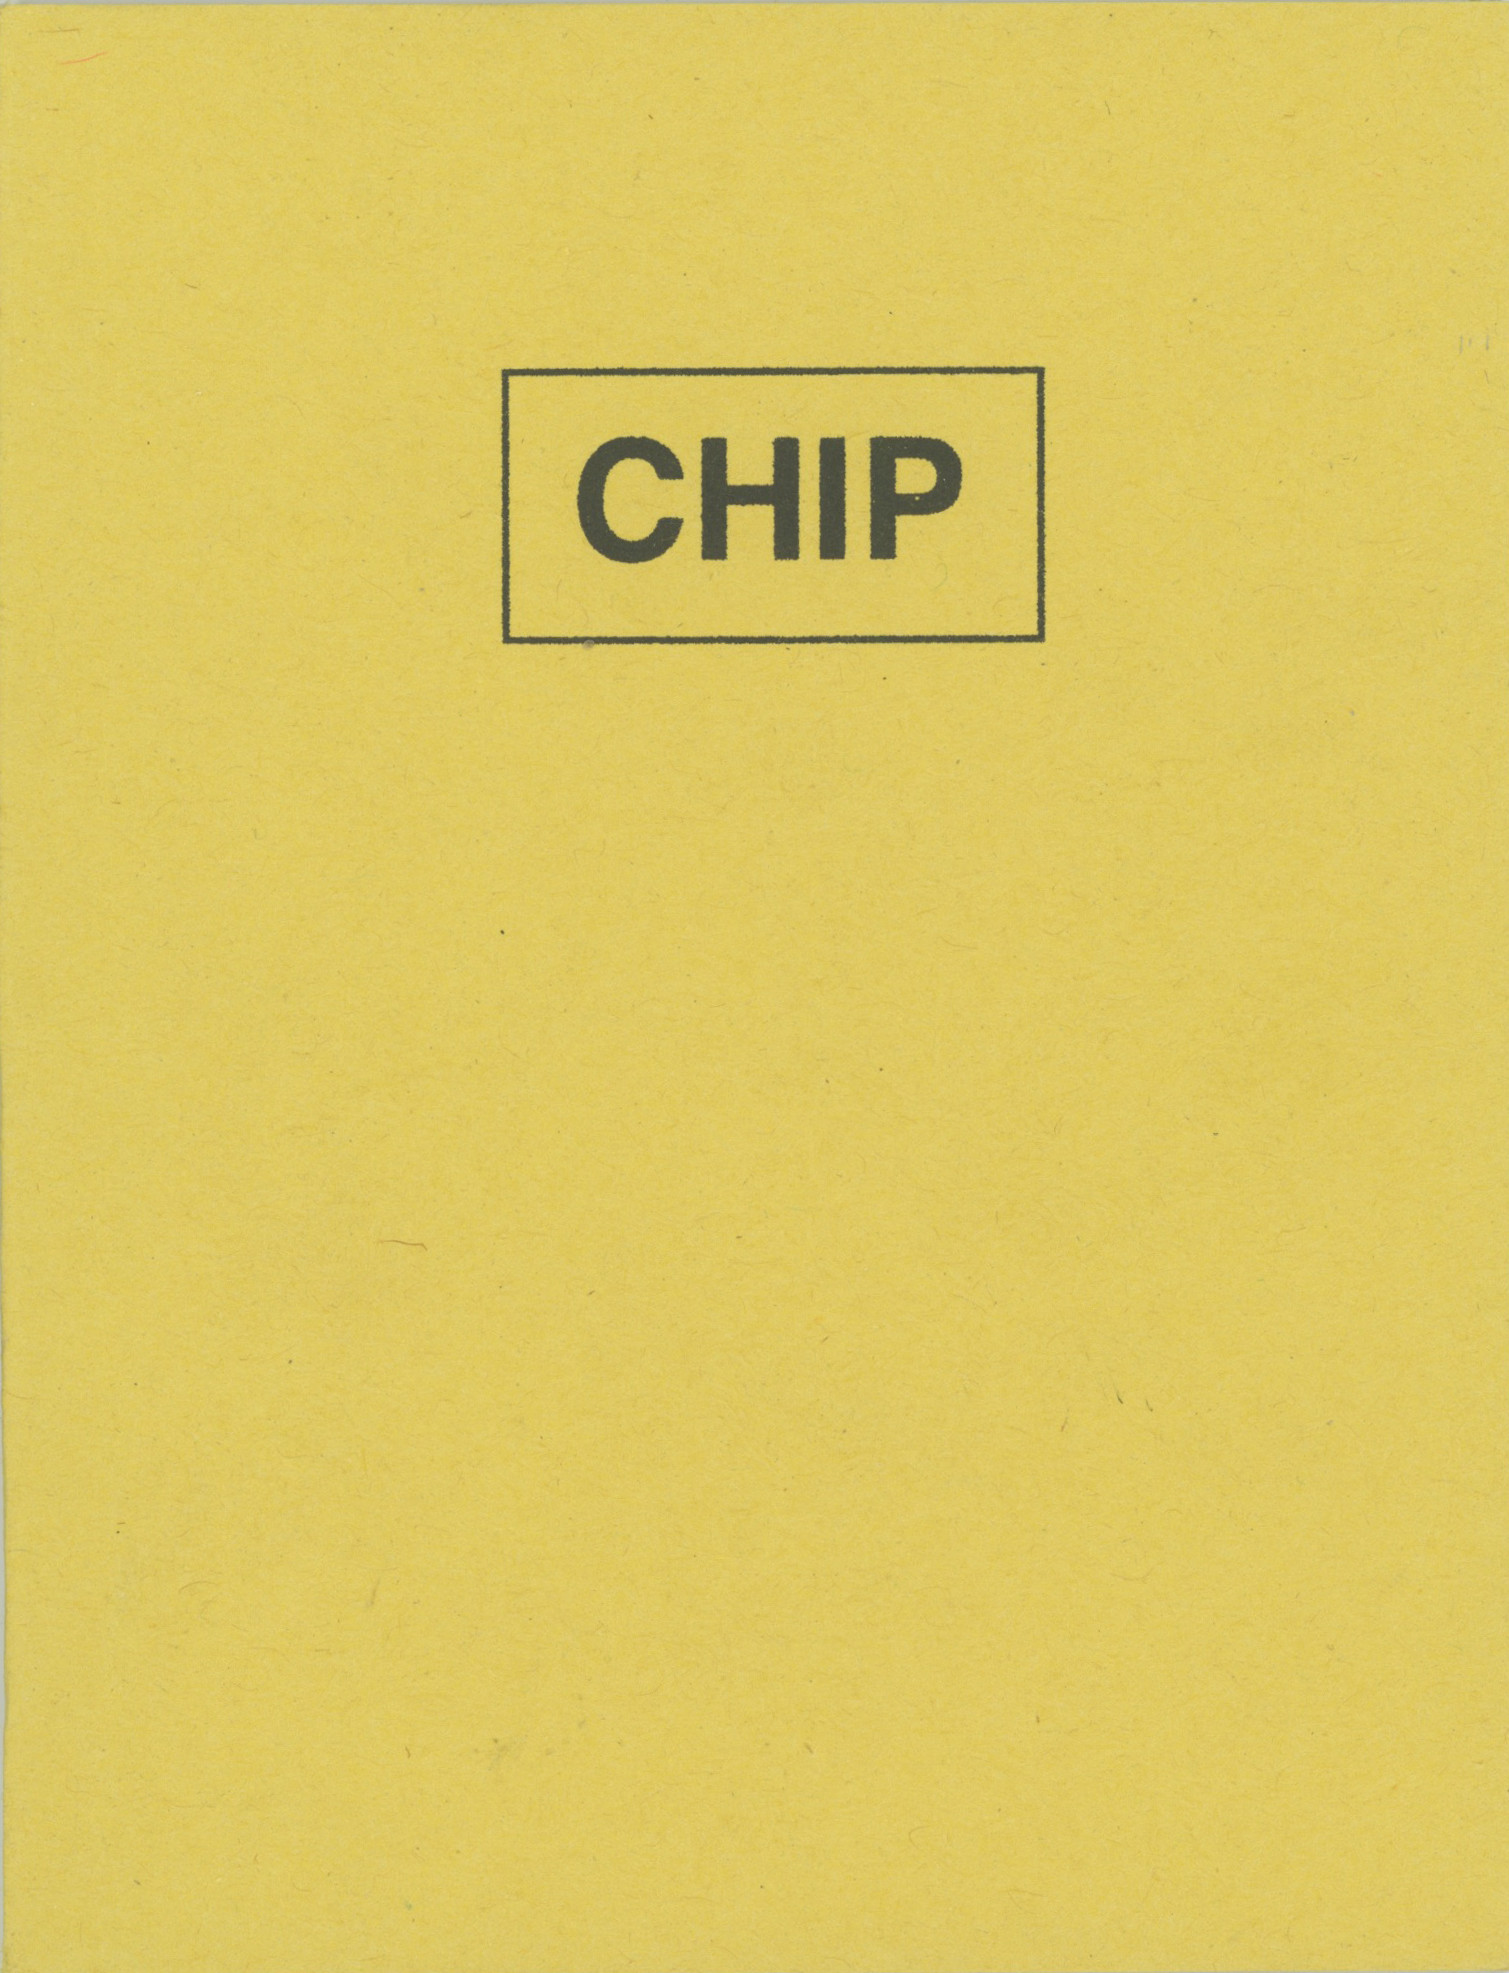 chipcover1